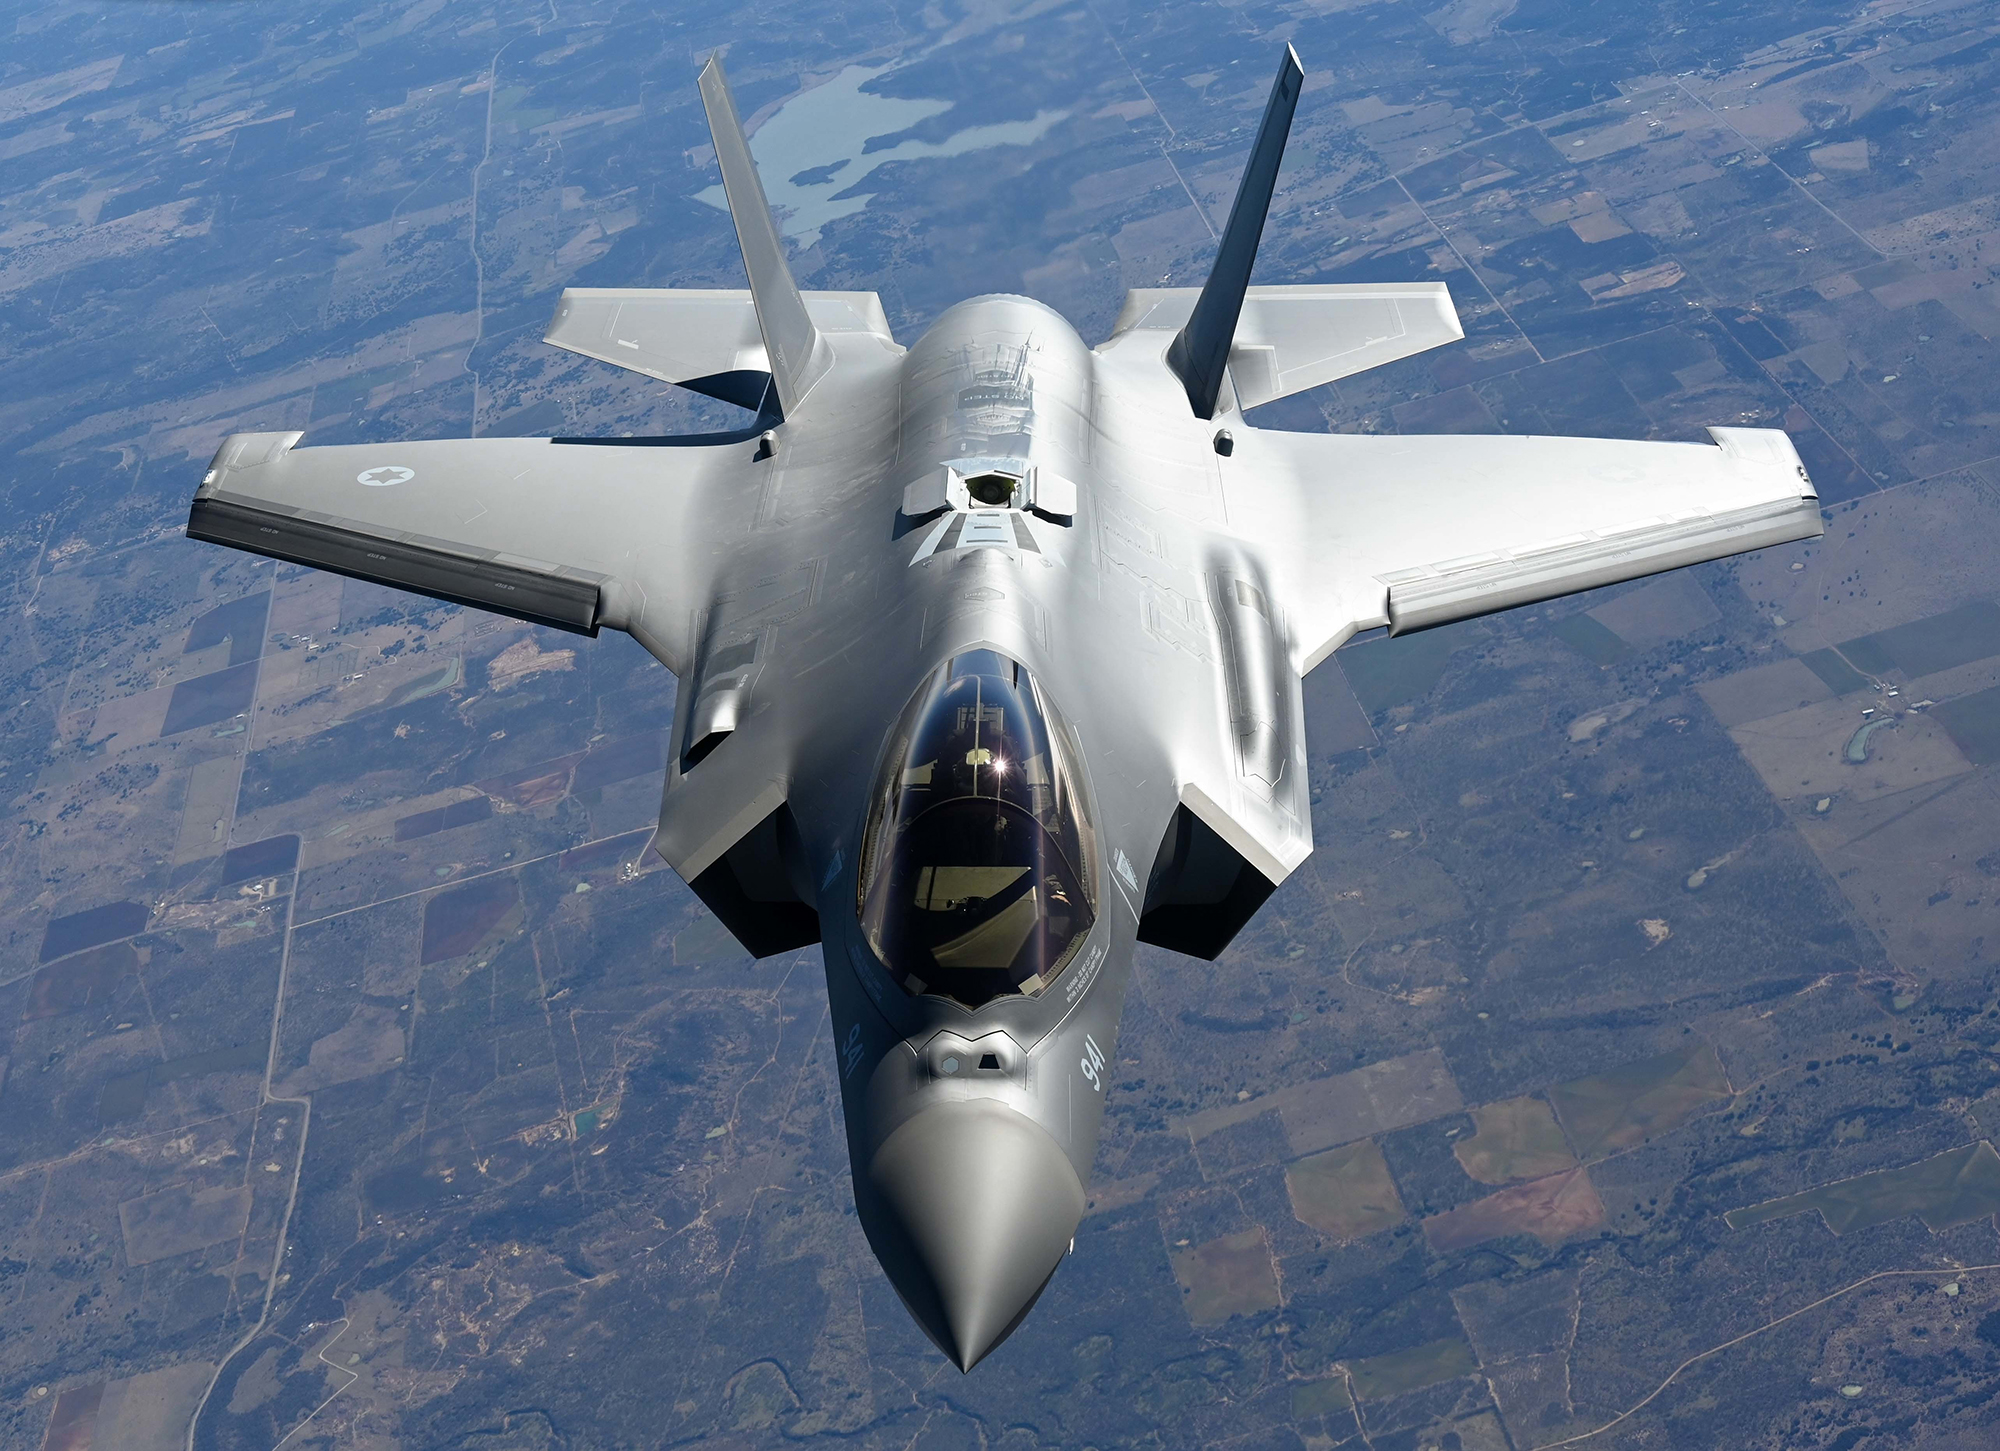 An F-35 Lightning II from the Defense Contract Maintenance Agency conducts its first flight and first tanking with a KC-135R Stratotanker from the 465th Air Refueling Squadron, Tinker Air Force Base, Okla., Feb. 24, 2021. Once fully tested, this F-35 will join the fleet at Eielson Air Force Base, Alaska. (U.S. Air Force photo by Senior Airman Mary Begy)